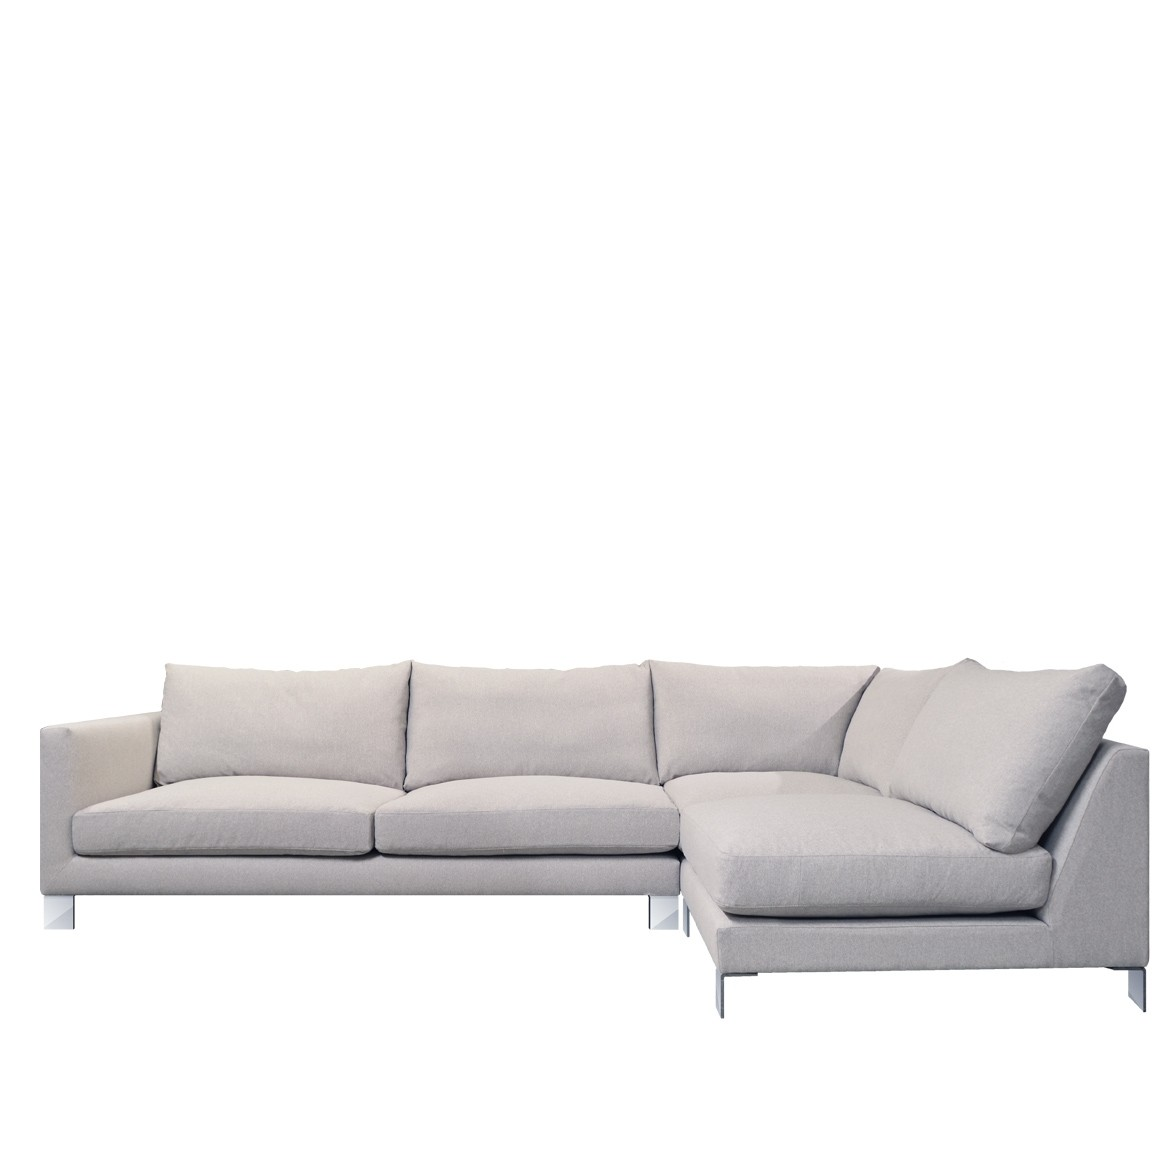 Siesta Small Deep Corner Sofa Adventures In Furniture